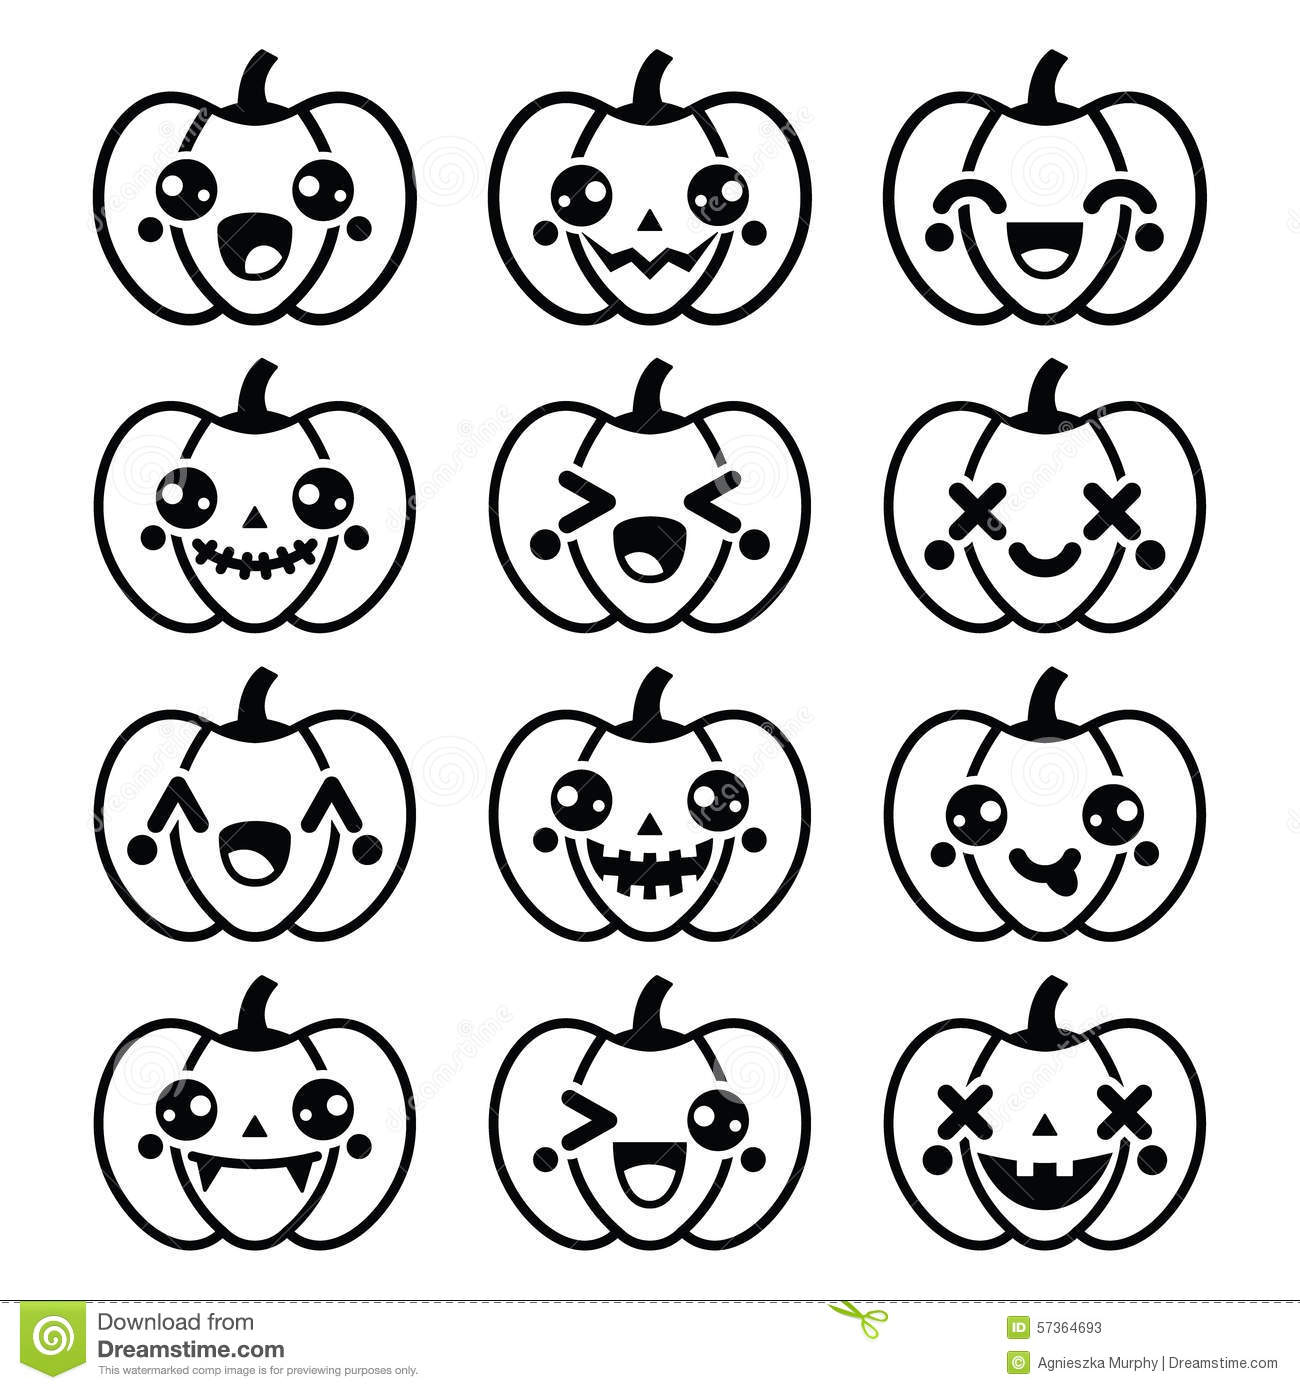 Download Vector Dragon Naga For as well Carving patterns further Halloween Kurbis Schnitzvorlagen moreover Halloween Plantillas TyEao4X5p moreover Stock Illustration Halloween Kawaii Cute Black Pumpkin Icons Celebrating Scary Faces Set Isolated White Image57364693. on scary ghost pumpkin pattern